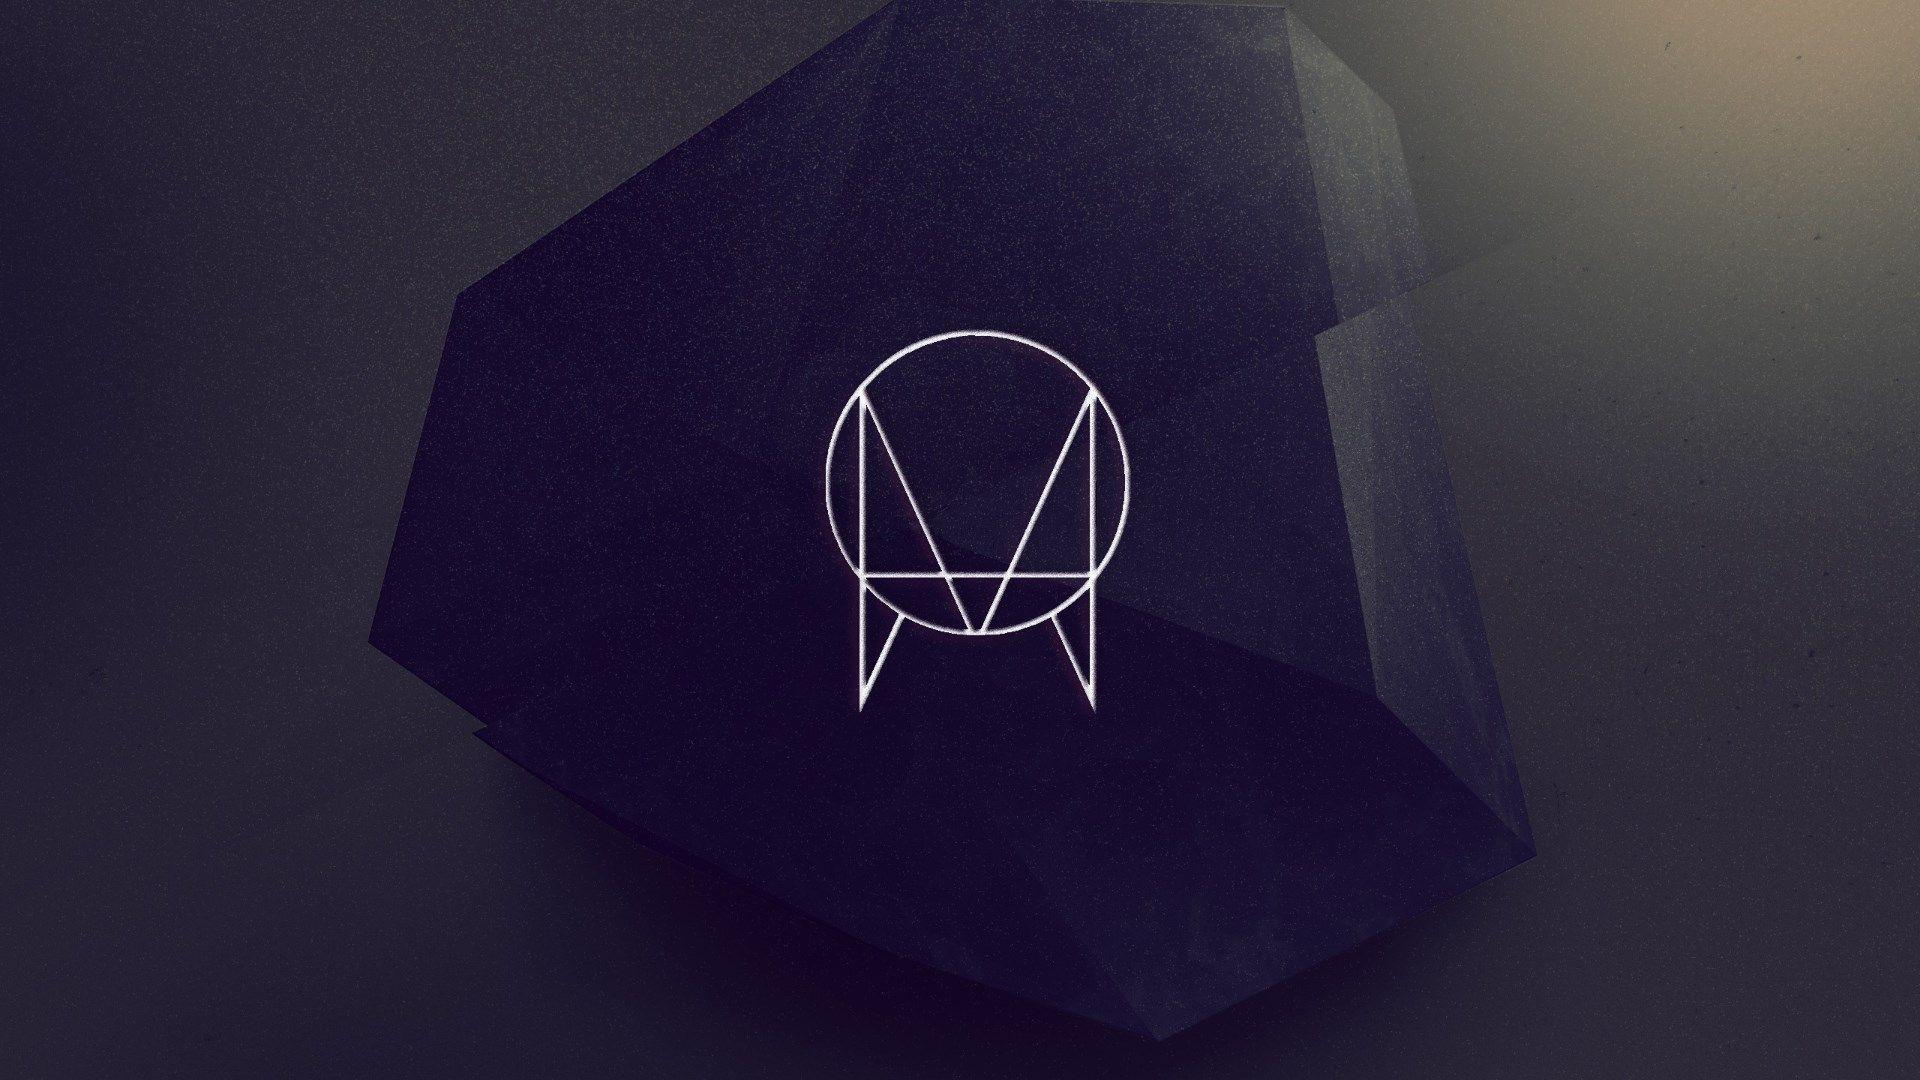 OWSLA Wallpapers